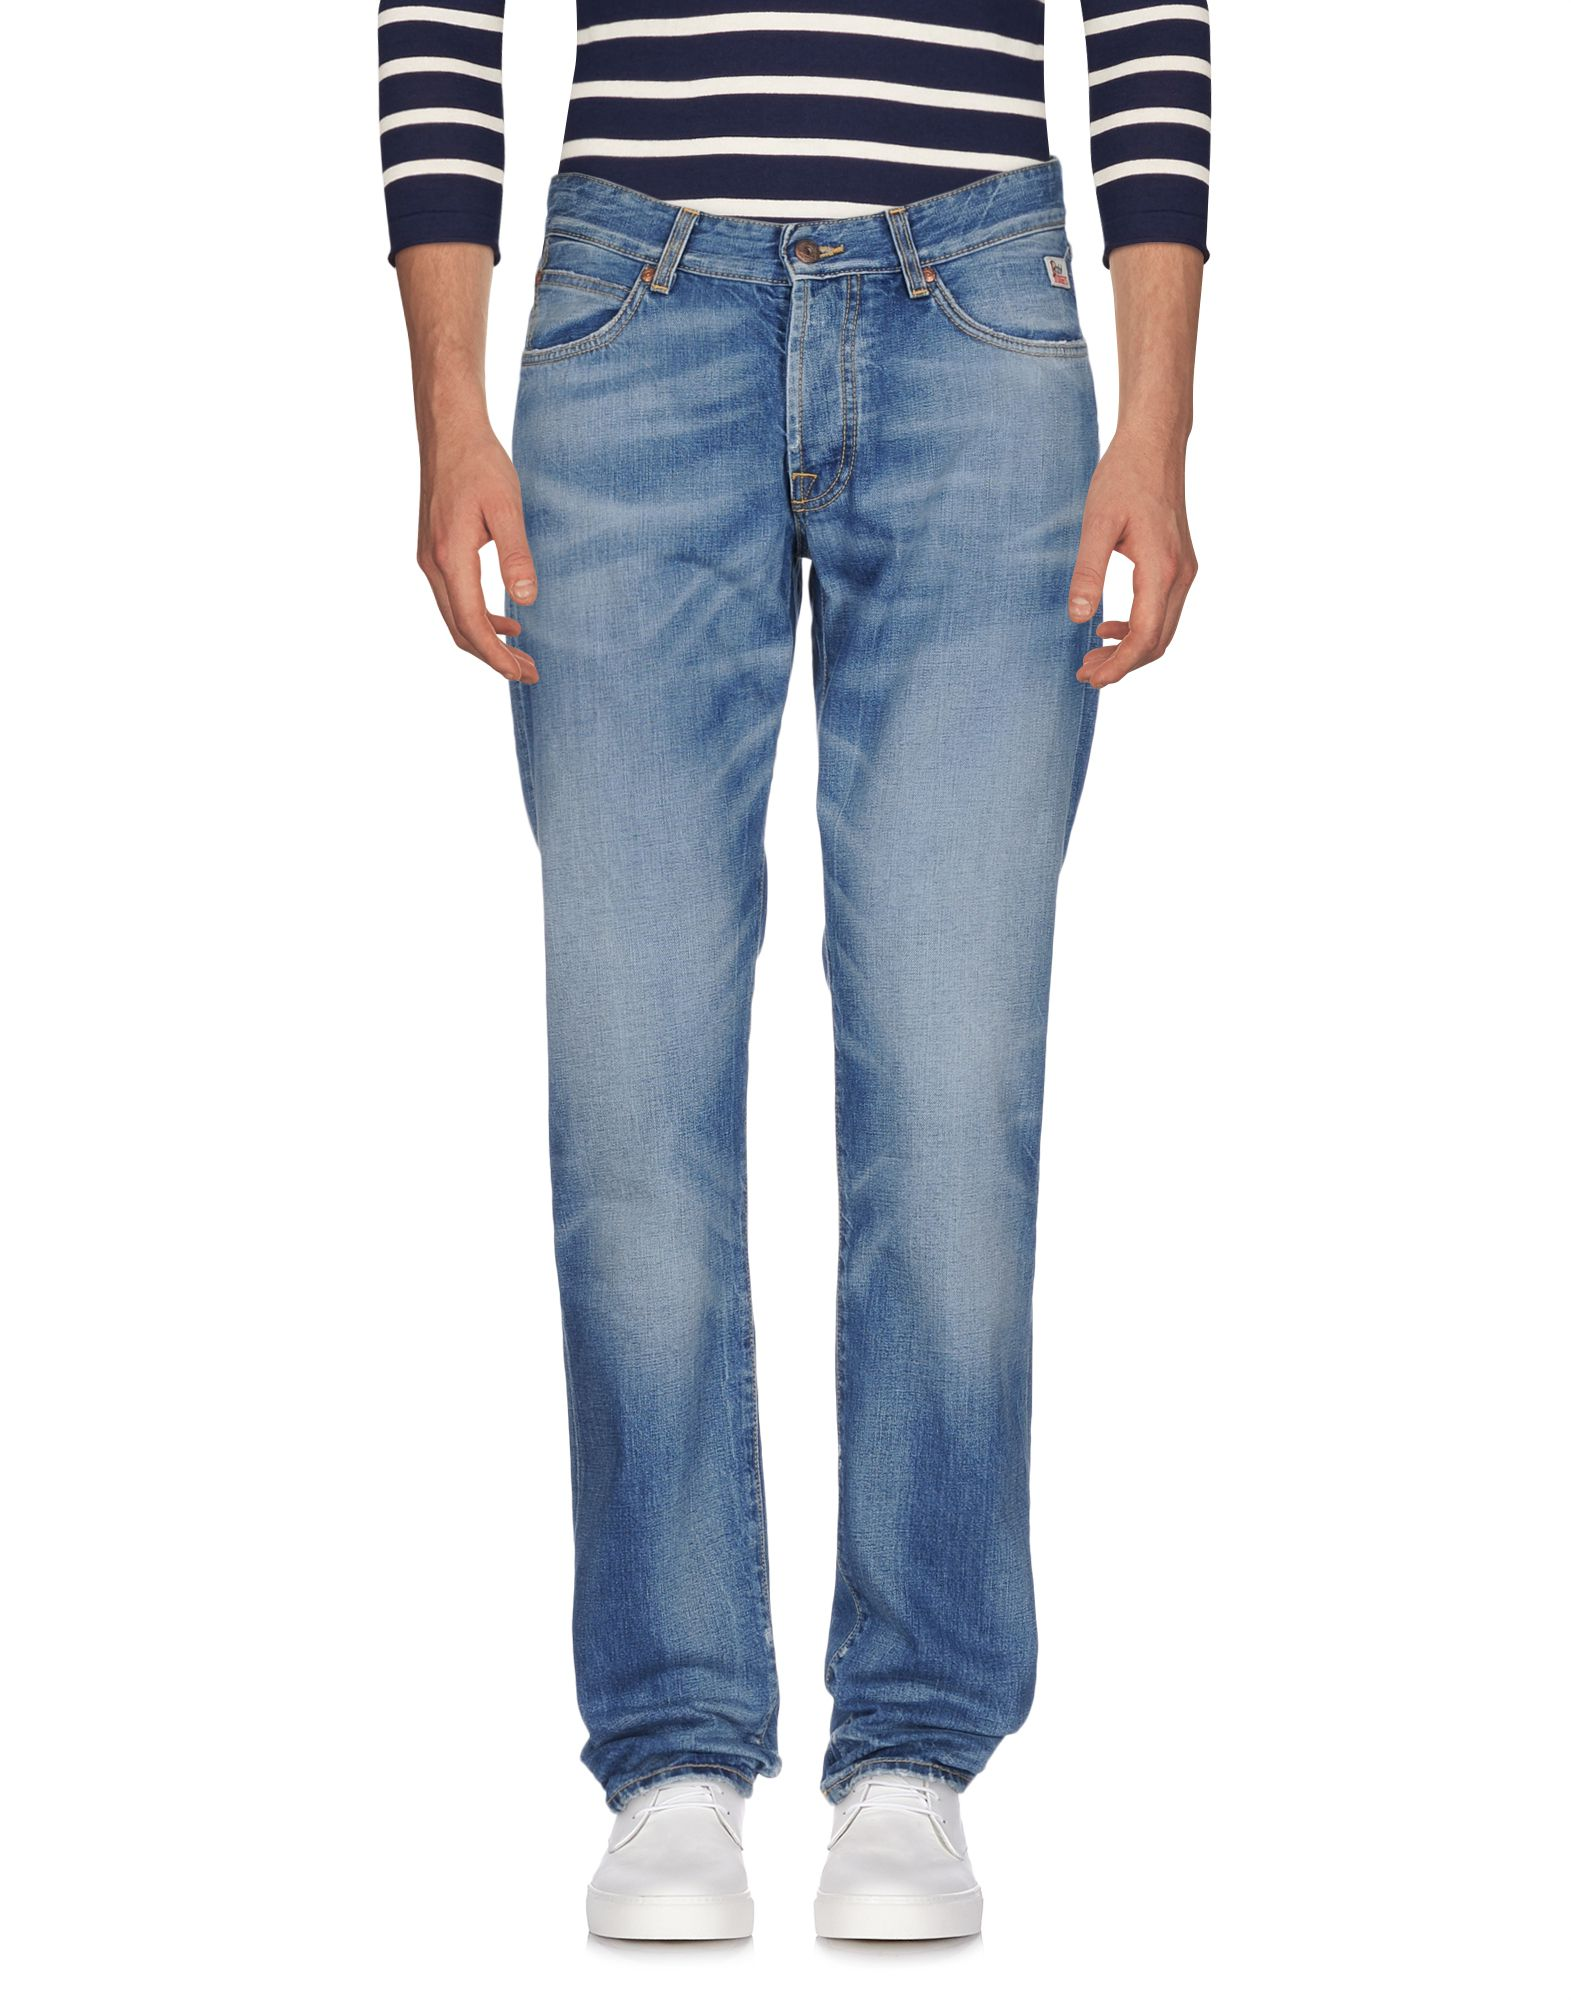 Pantaloni Jeans Roÿ Rogers Donna - Acquista online su